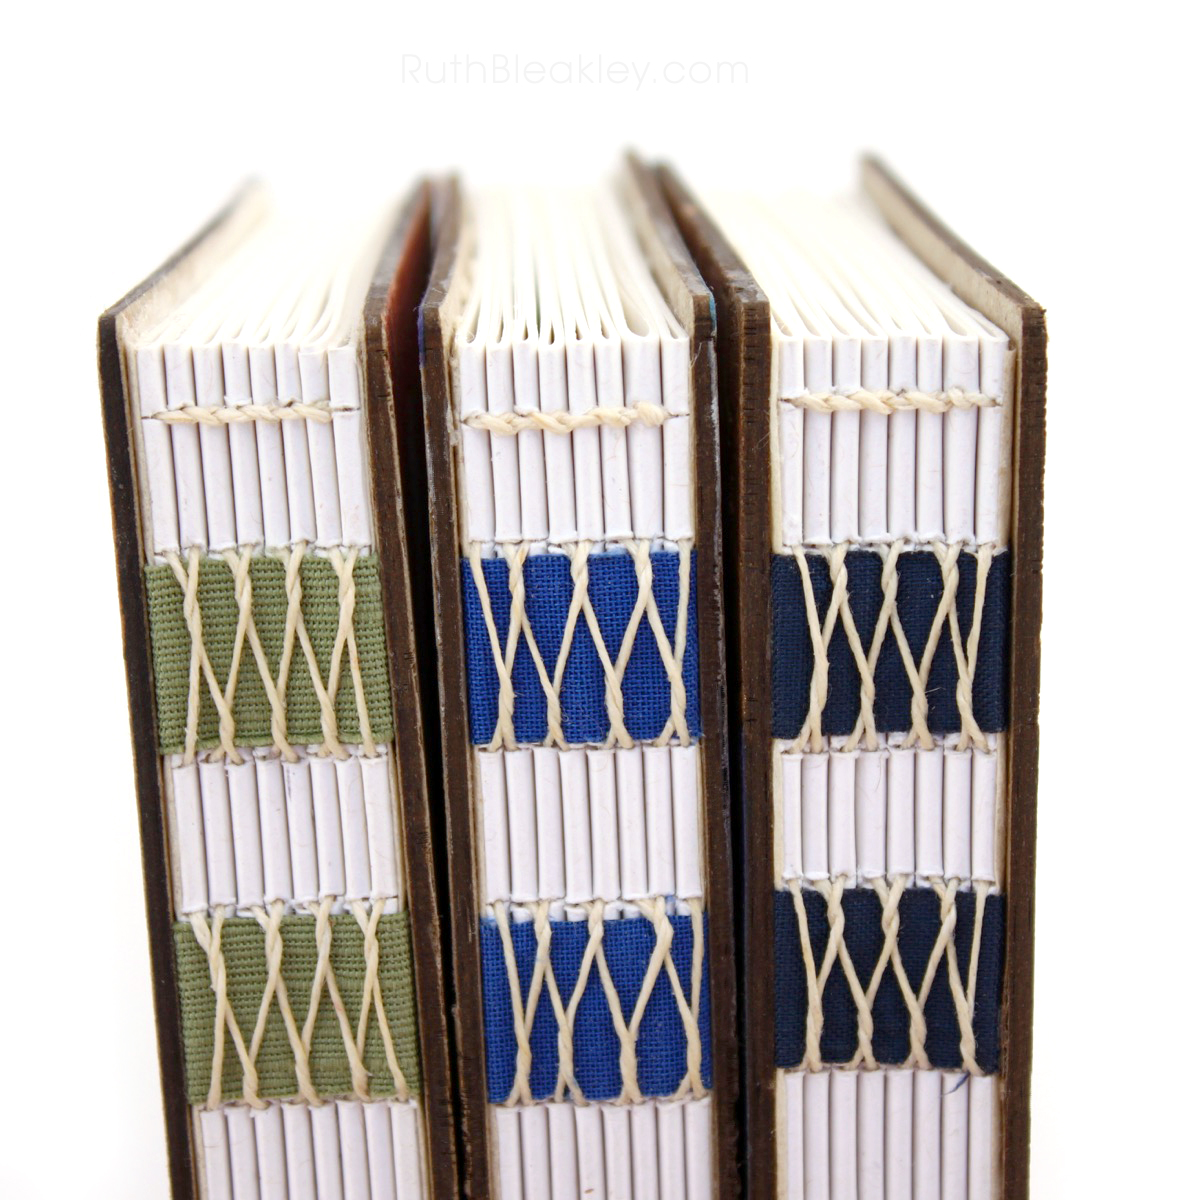 Handpainted Nature Journals sewn with French Link Stitch and engraved with the Glowforge from Book artist Ruth Bleakley - 10